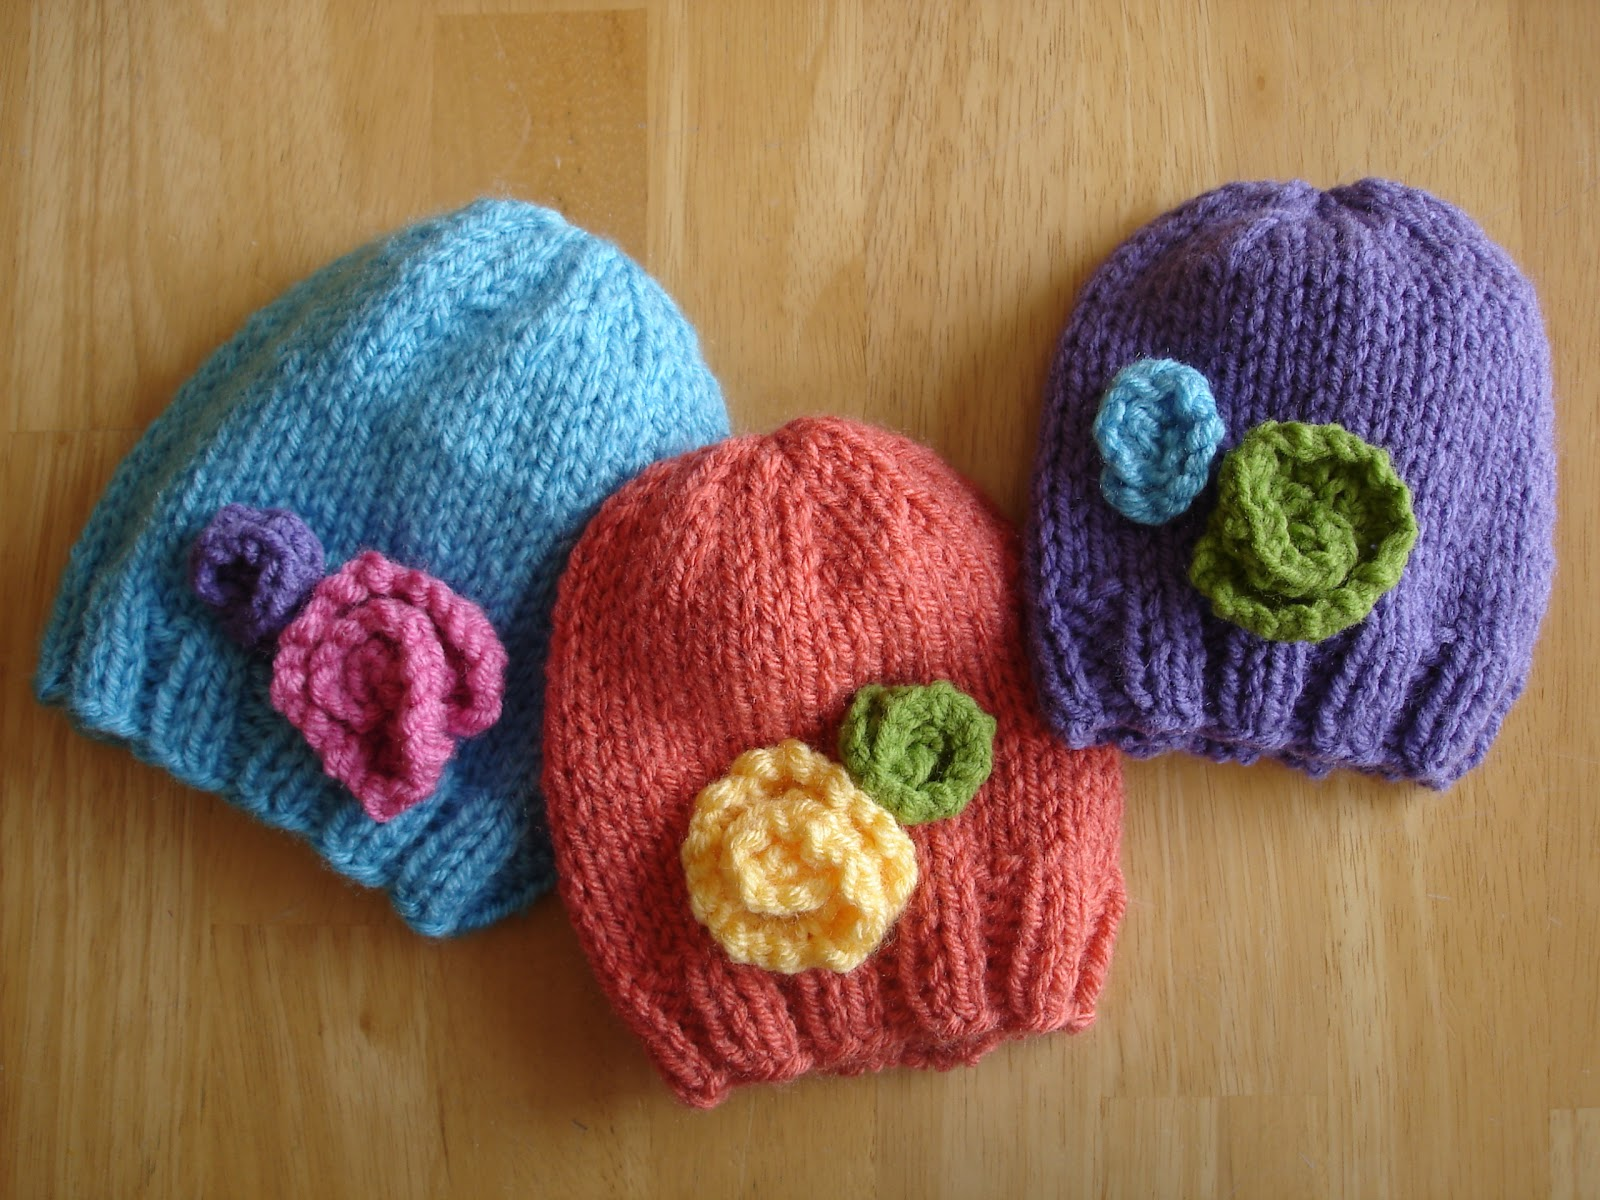 13 Loom Knit Slouchy Hat Patterns - The Funky Stitch